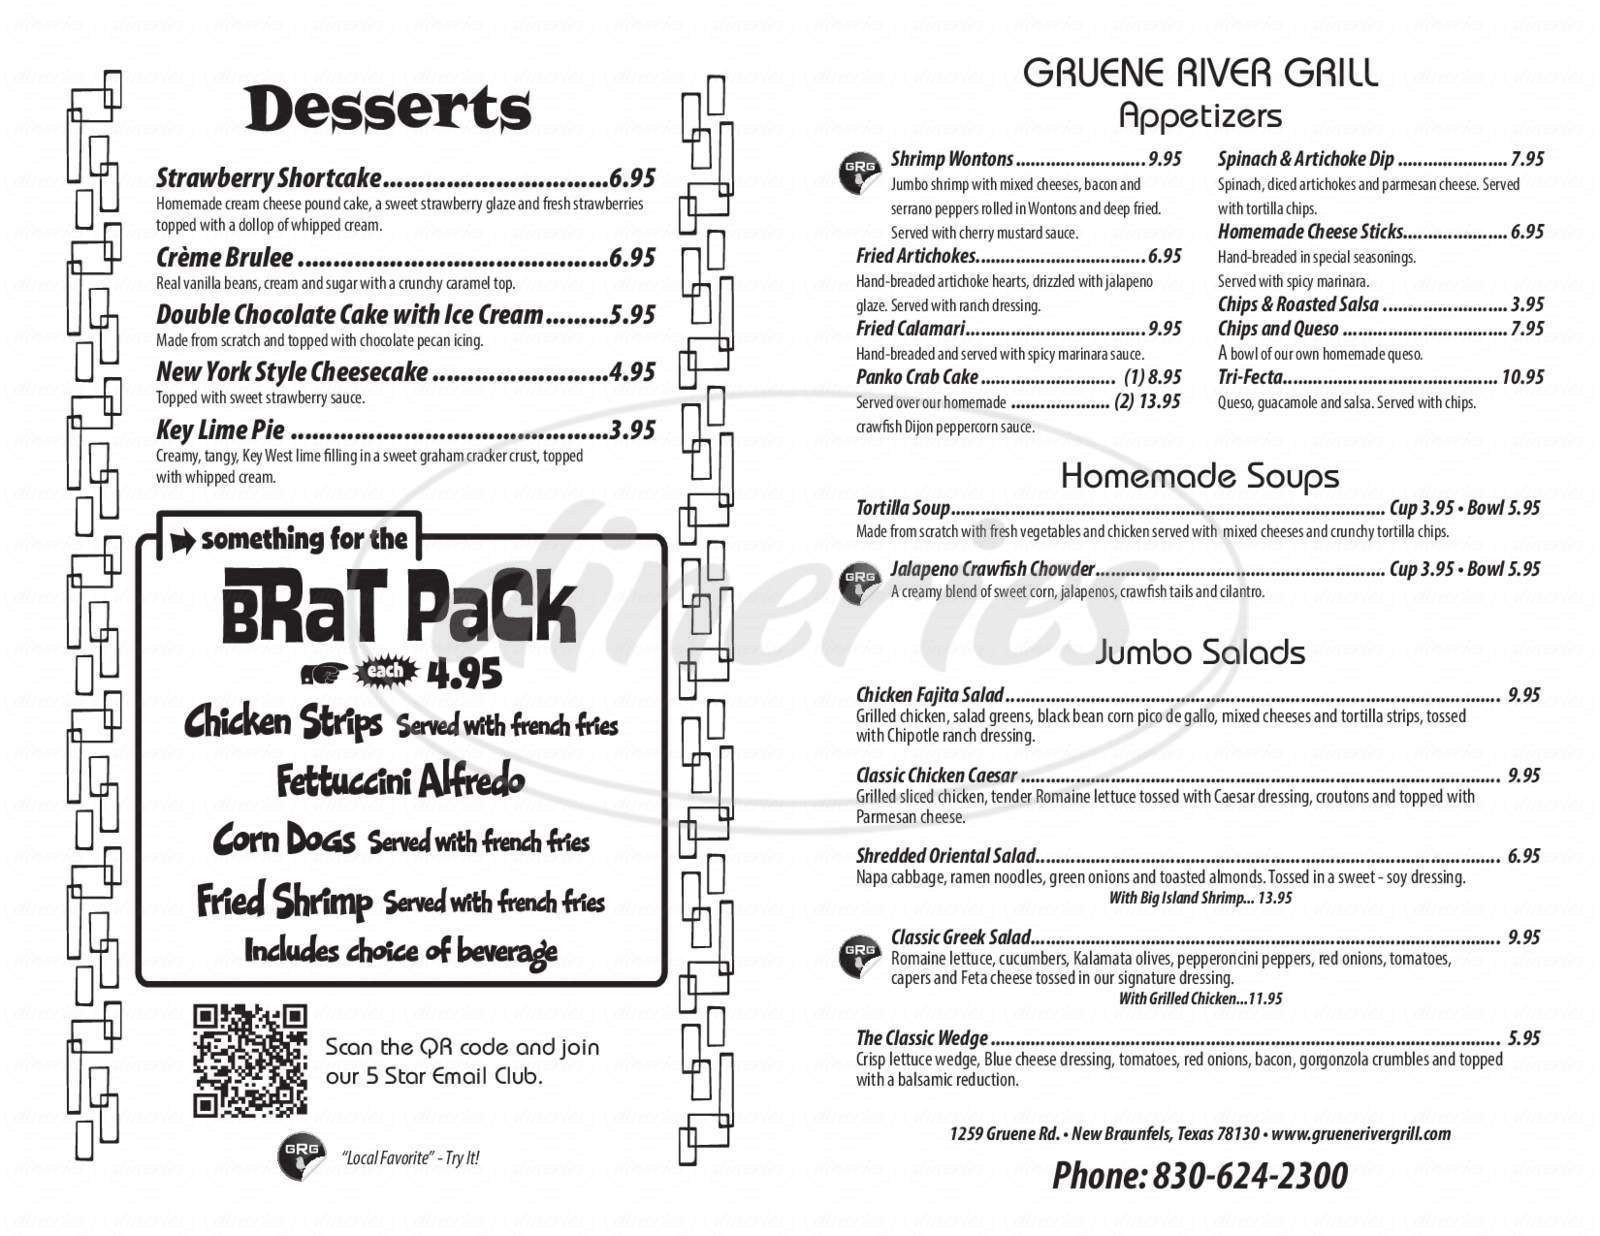 menu for Gruene River Grill